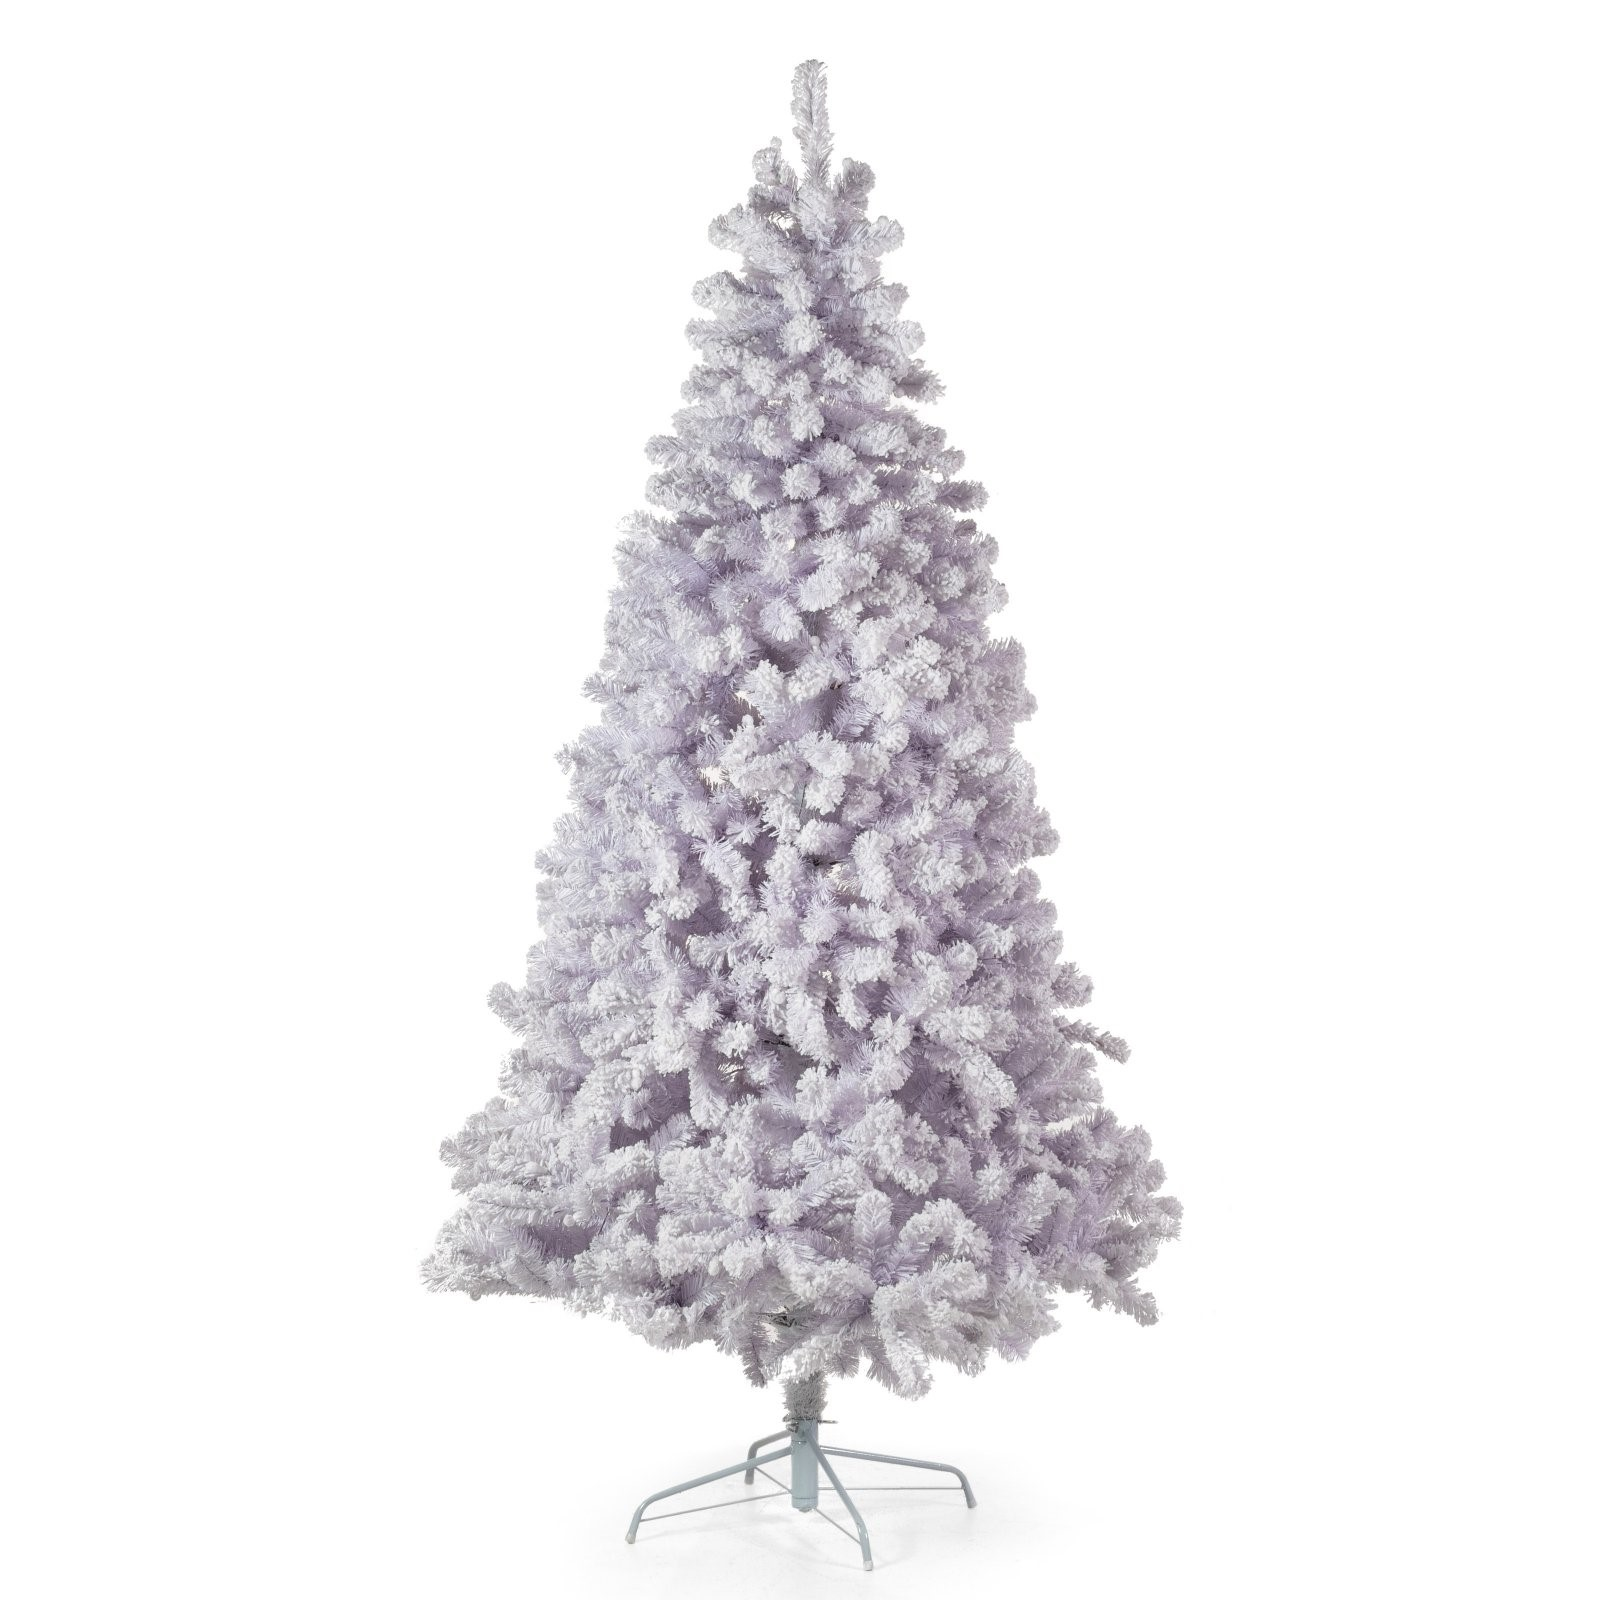 Belham Living 7.5ft Pre-Lit Artificial Christmas Tree with Clear Lights - White